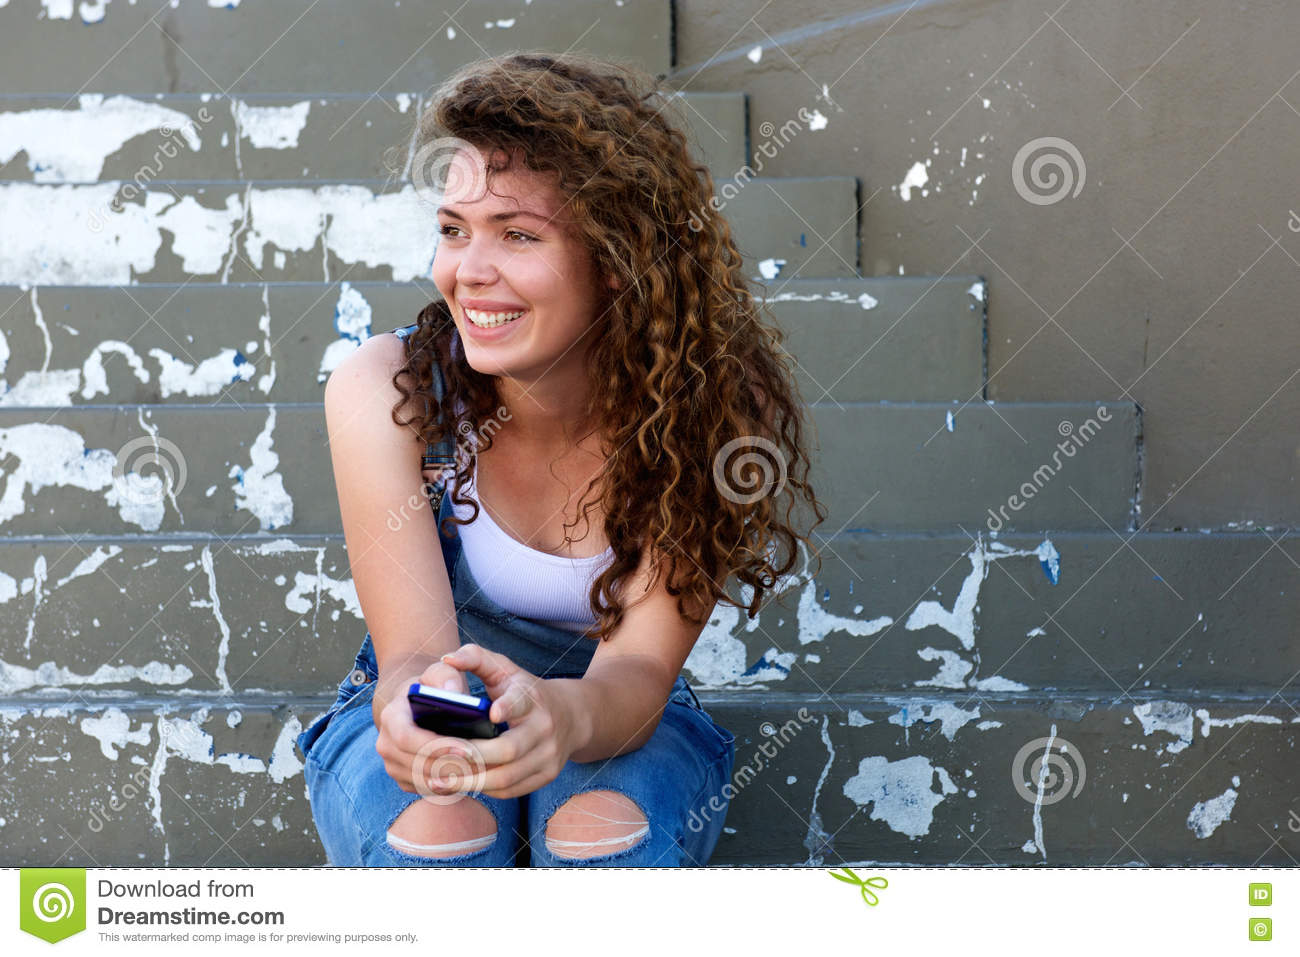 Smiling teen girl holding phone and sitting on steps